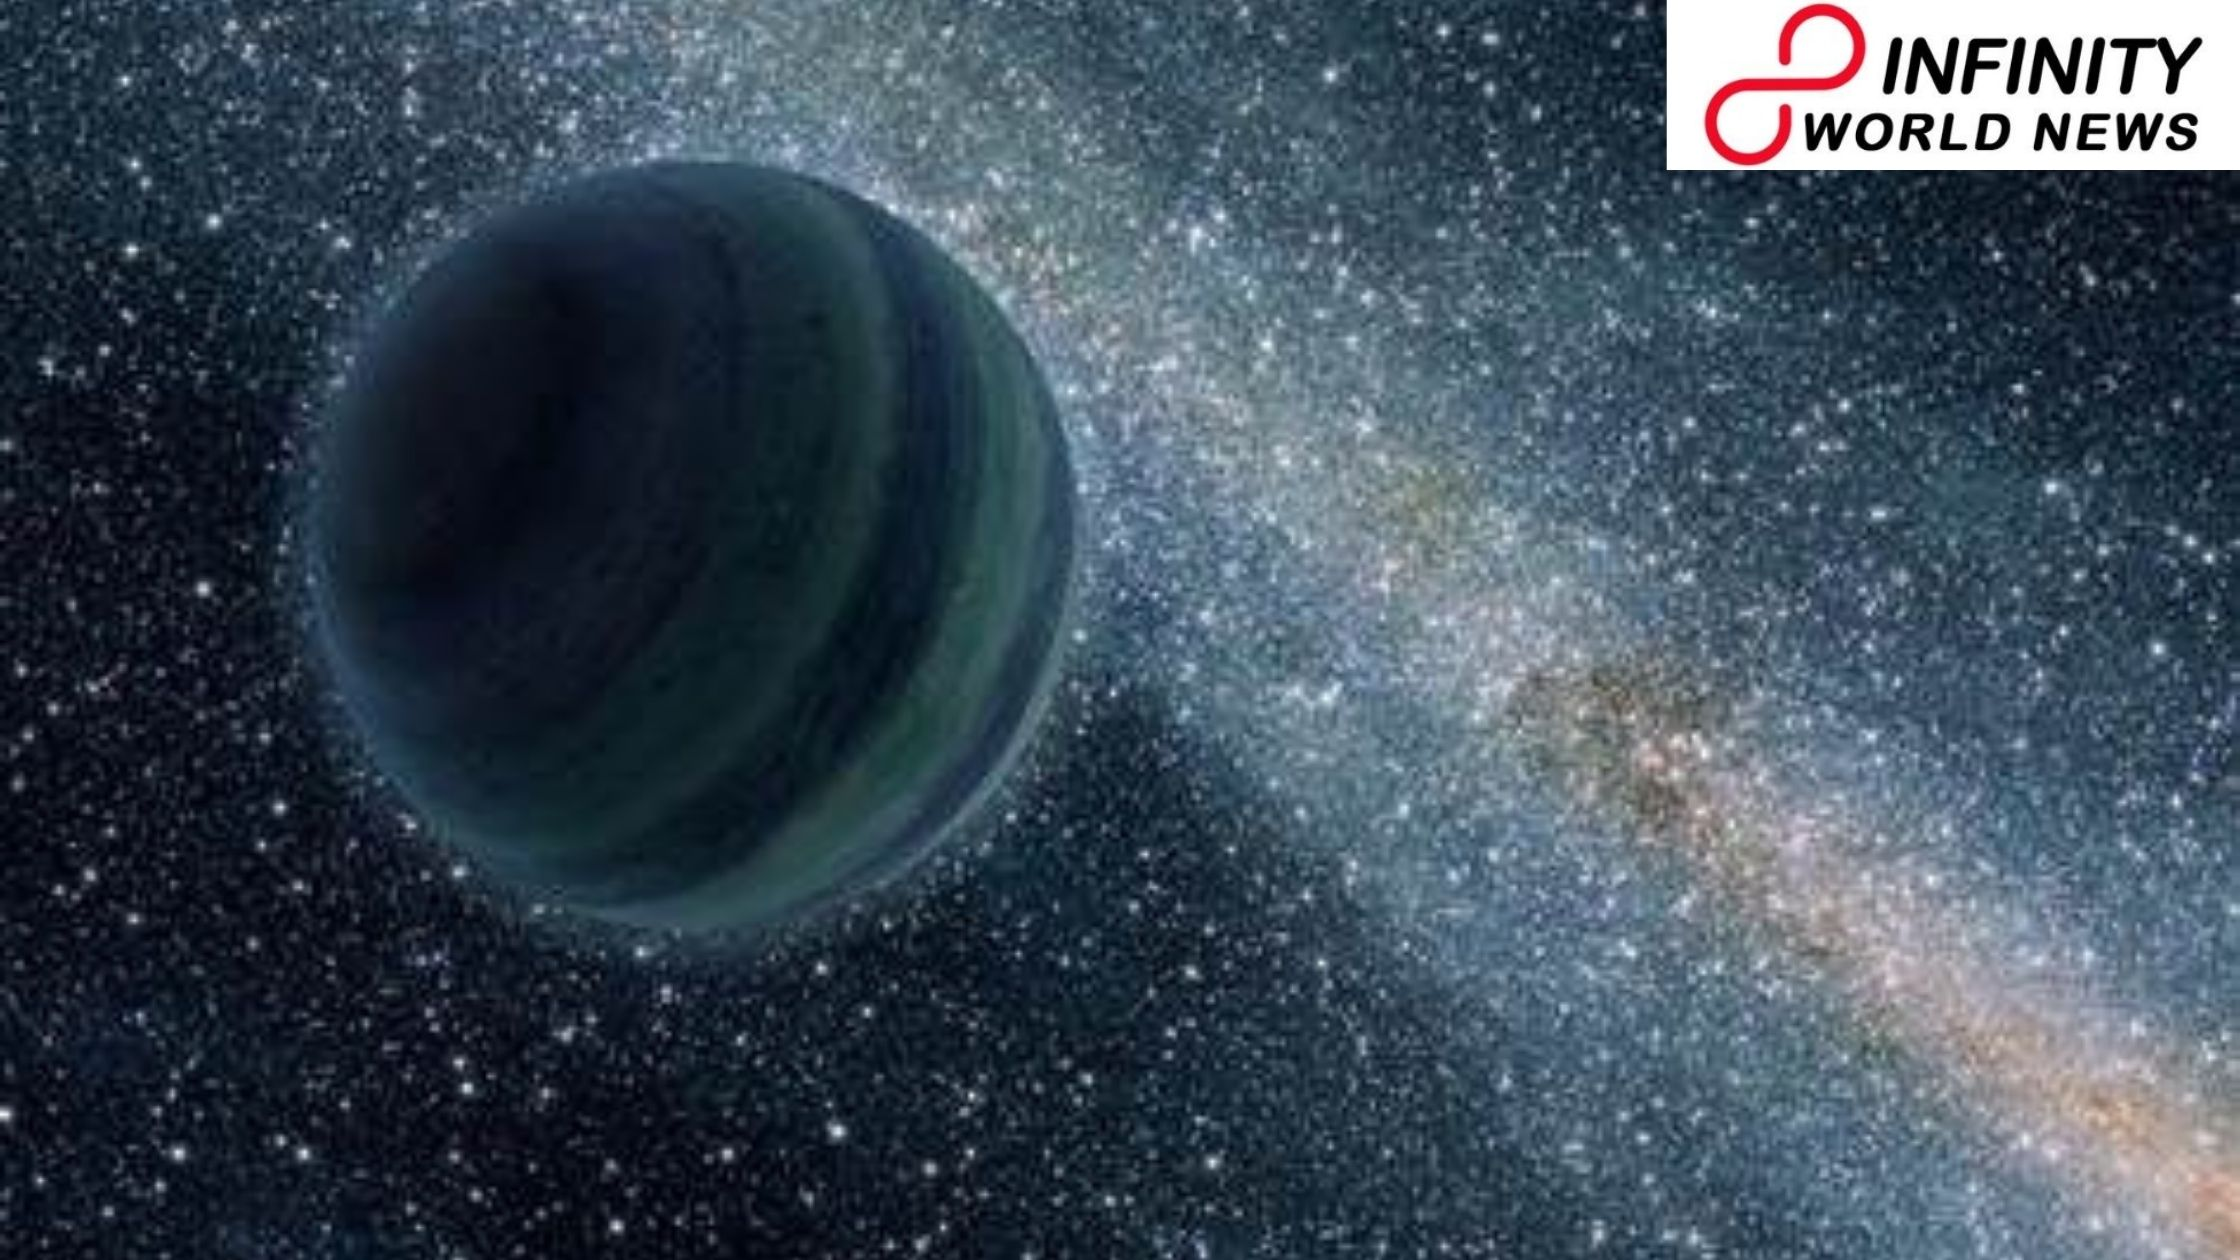 What is Planet 9: Unseen Monster Planet, a Black Hole or Fiction?